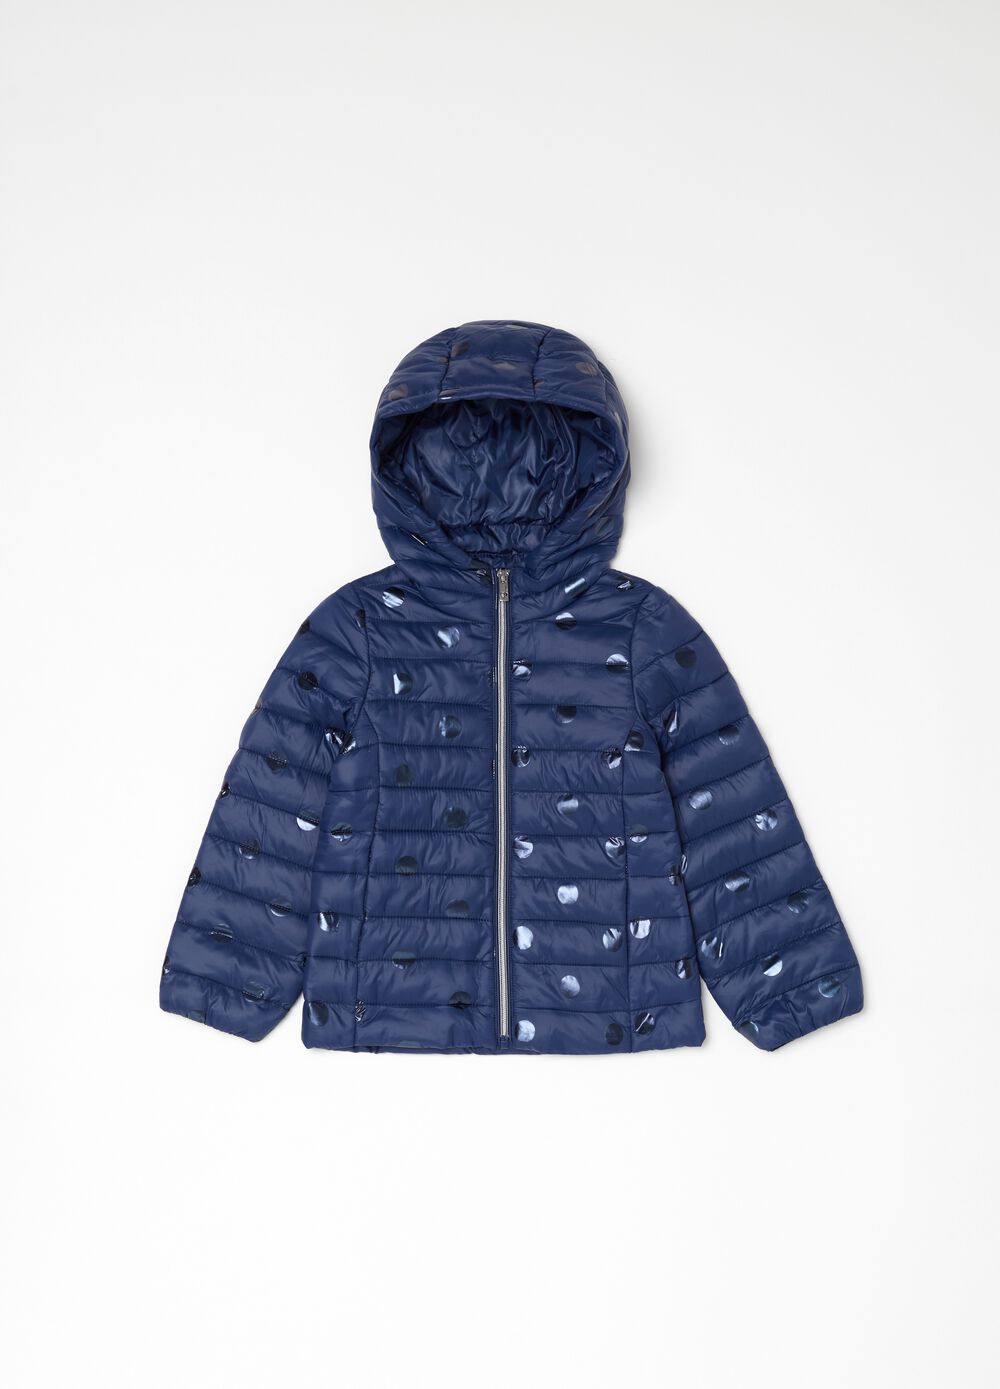 Lightweight padded jacket with macro polka dots